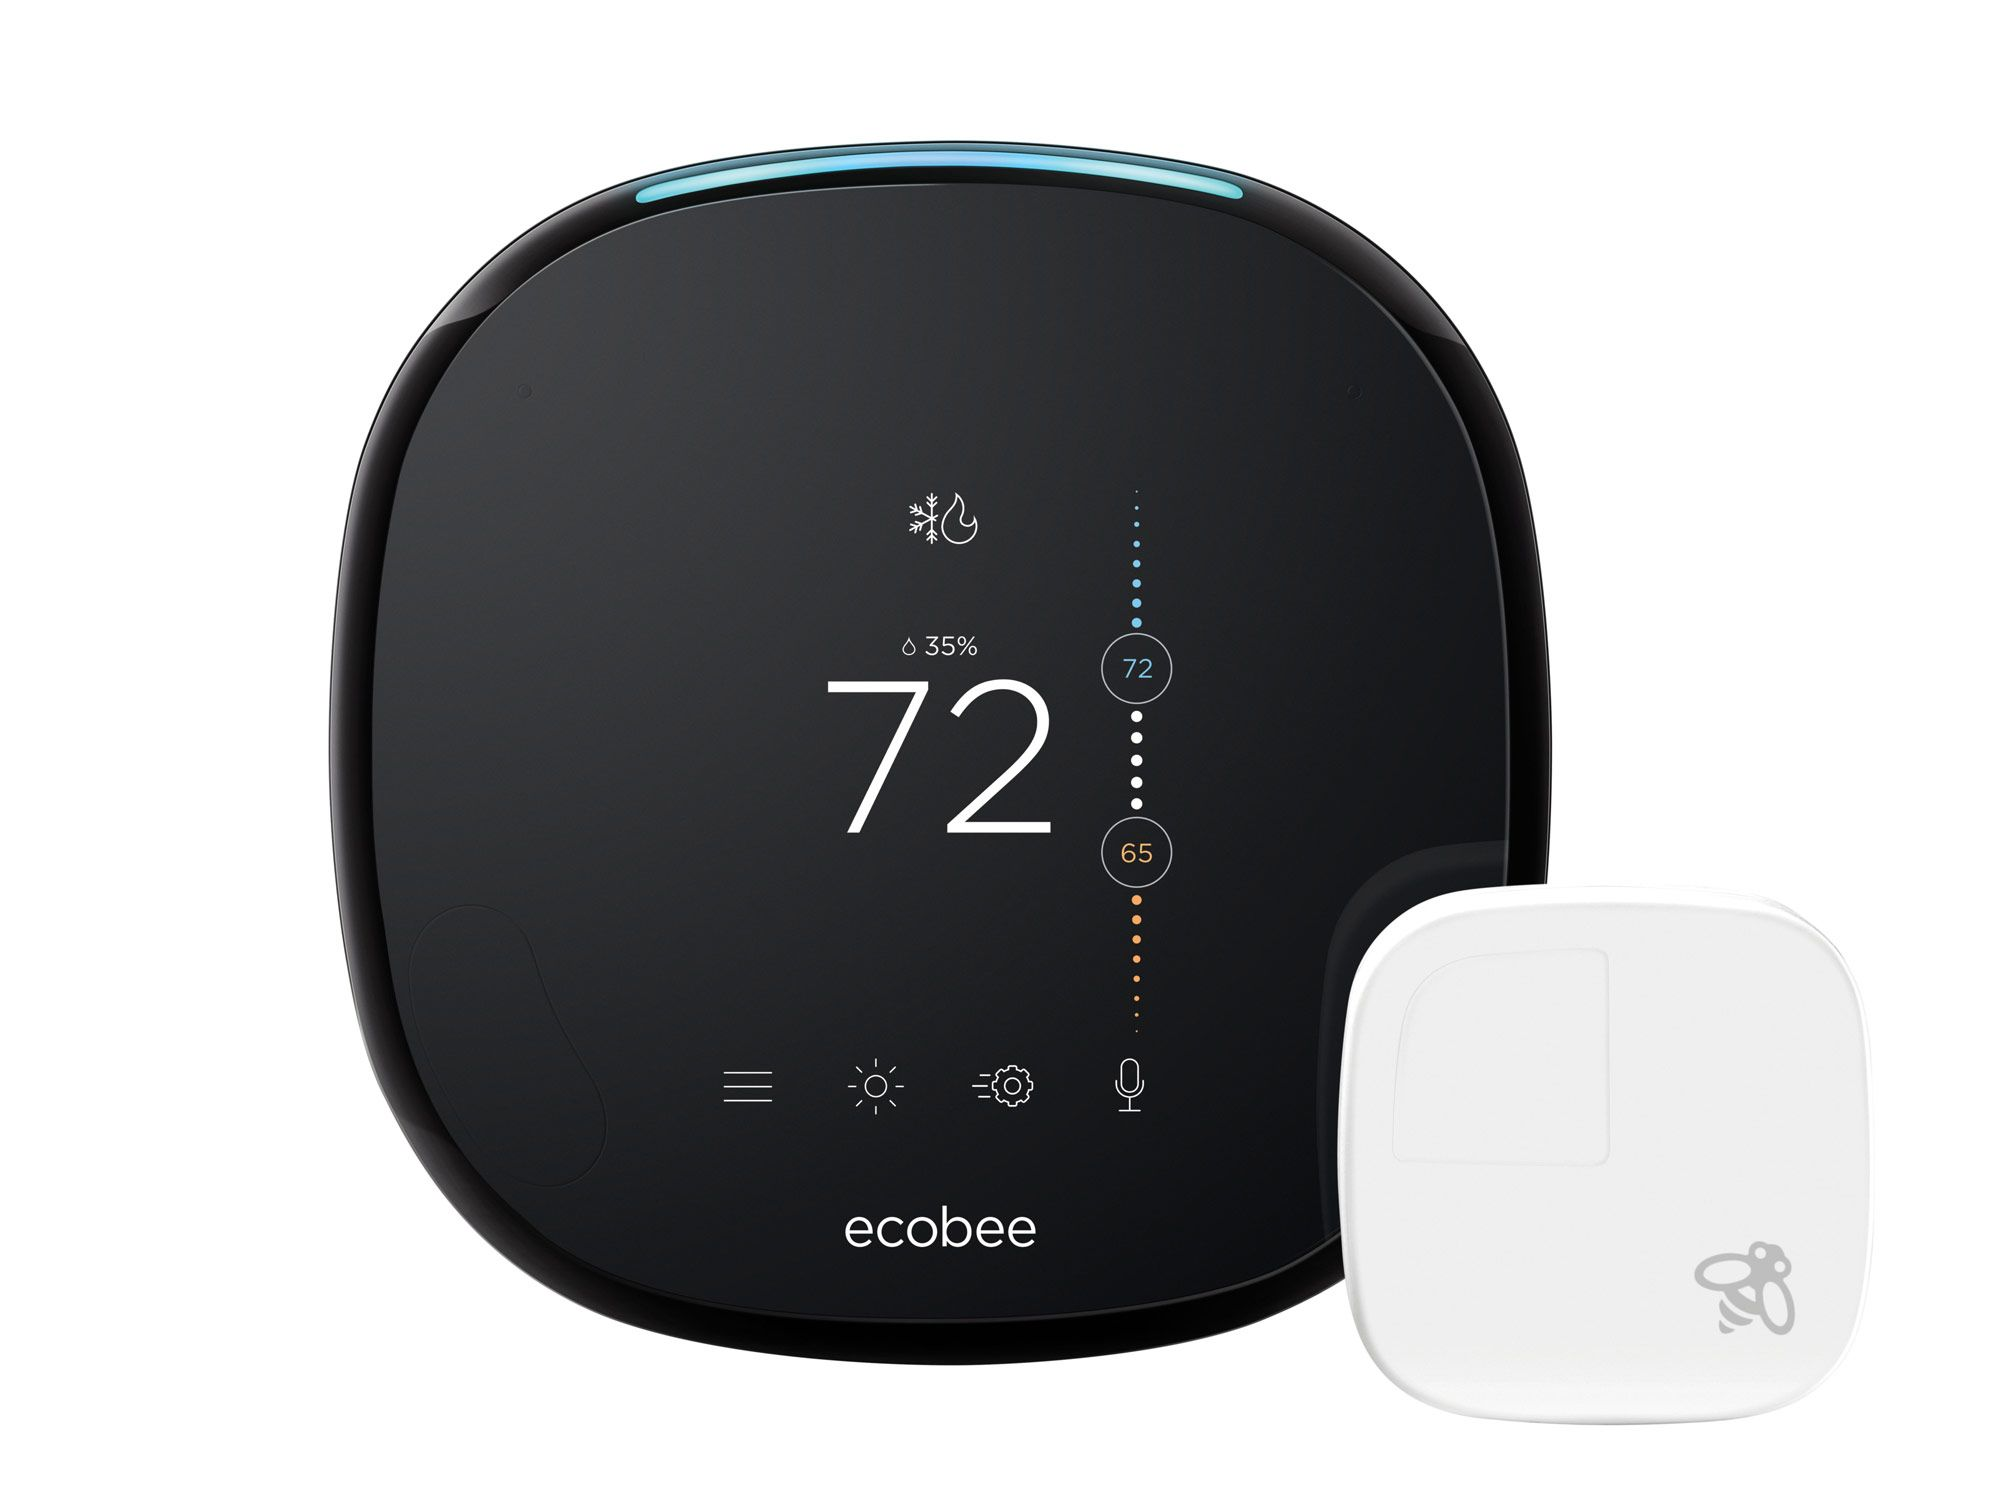 The Ecobee4 Smart Thermostat Is Here Featuring Built